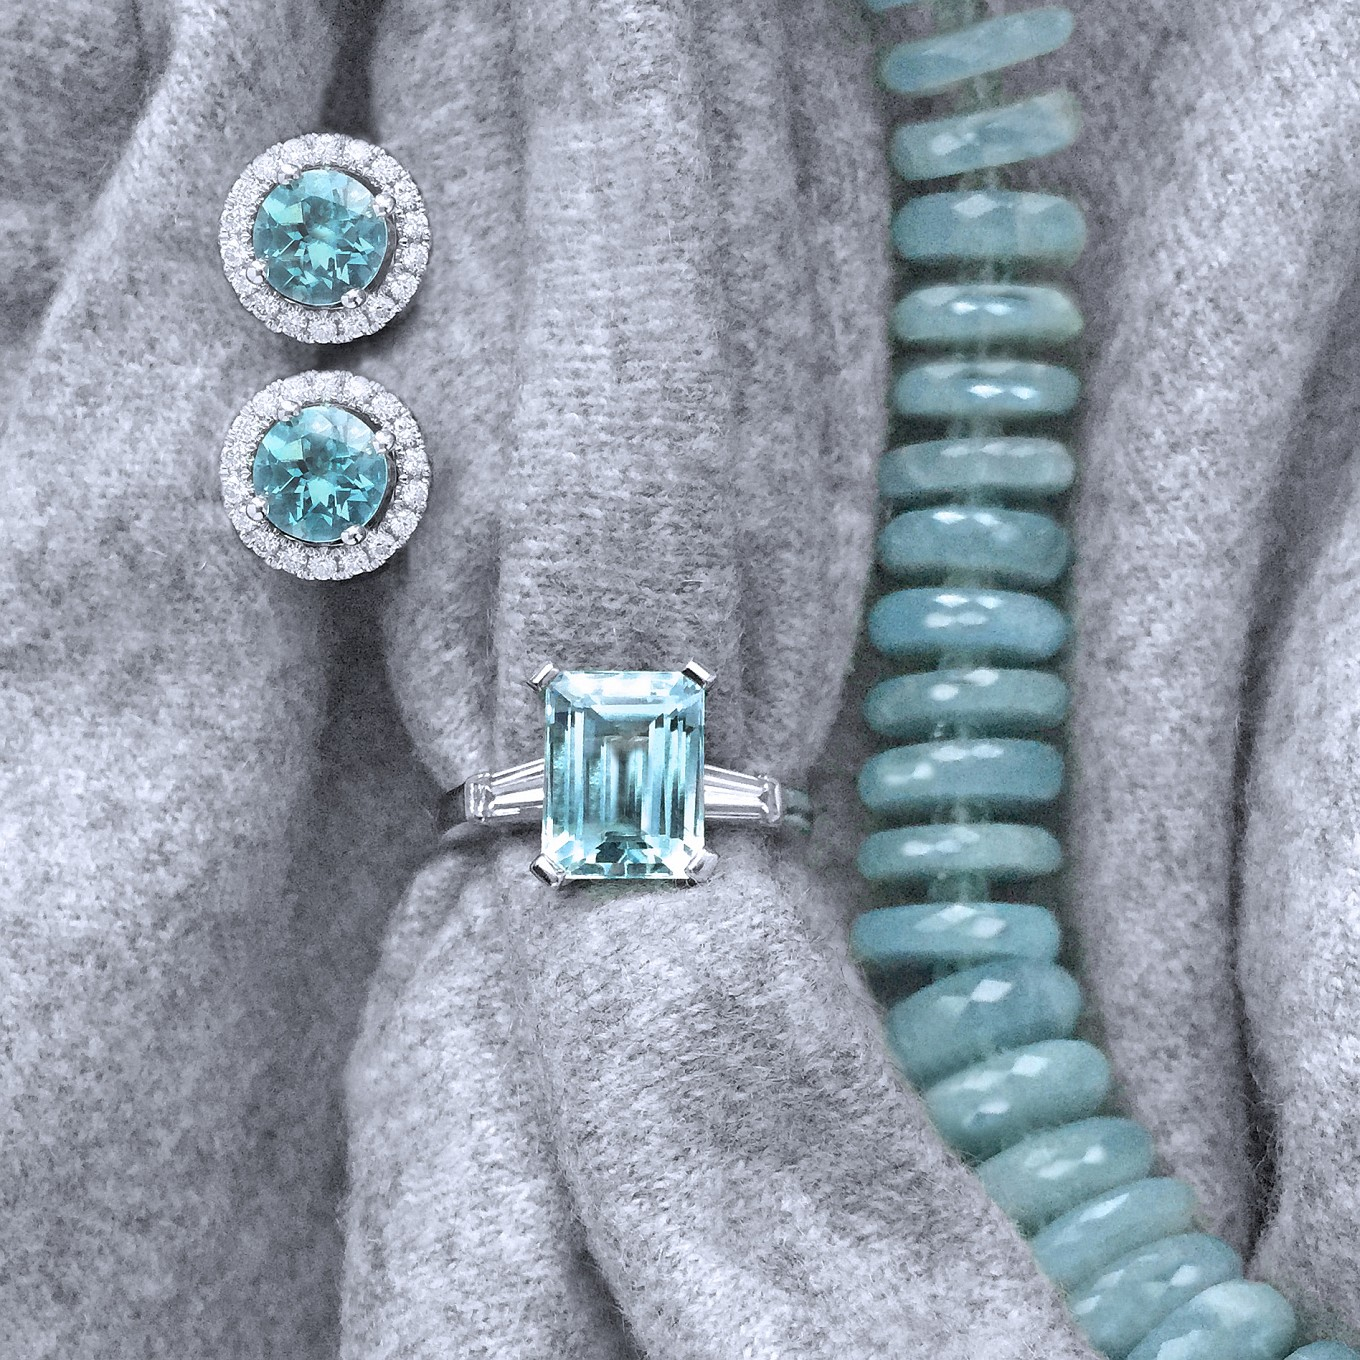 AQUAMARINE & DIAMOND STUDSEMERALD CUT AQUAMARINE &  TAPERED BAGUETTE DIAMOND RING  IN PLATINUMFACETED AQUAMARINE SLICE NECKLACE